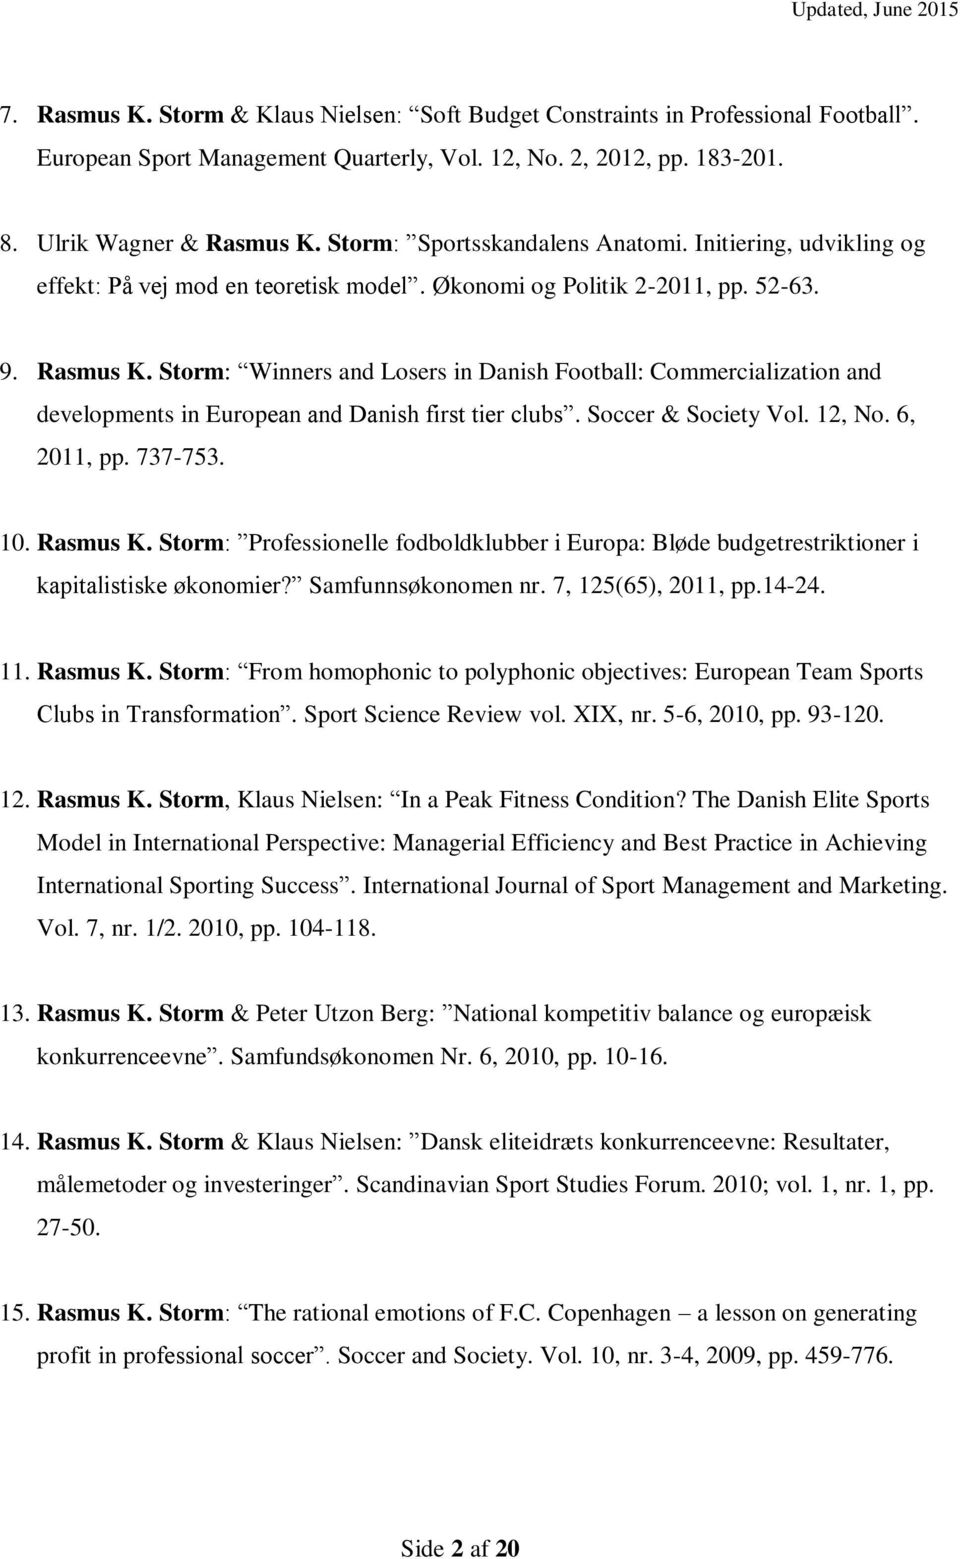 Storm: Winners and Losers in Danish Football: Commercialization and developments in European and Danish first tier clubs. Soccer & Society Vol. 12, No. 6, 2011, pp. 737-753. 10. Rasmus K.